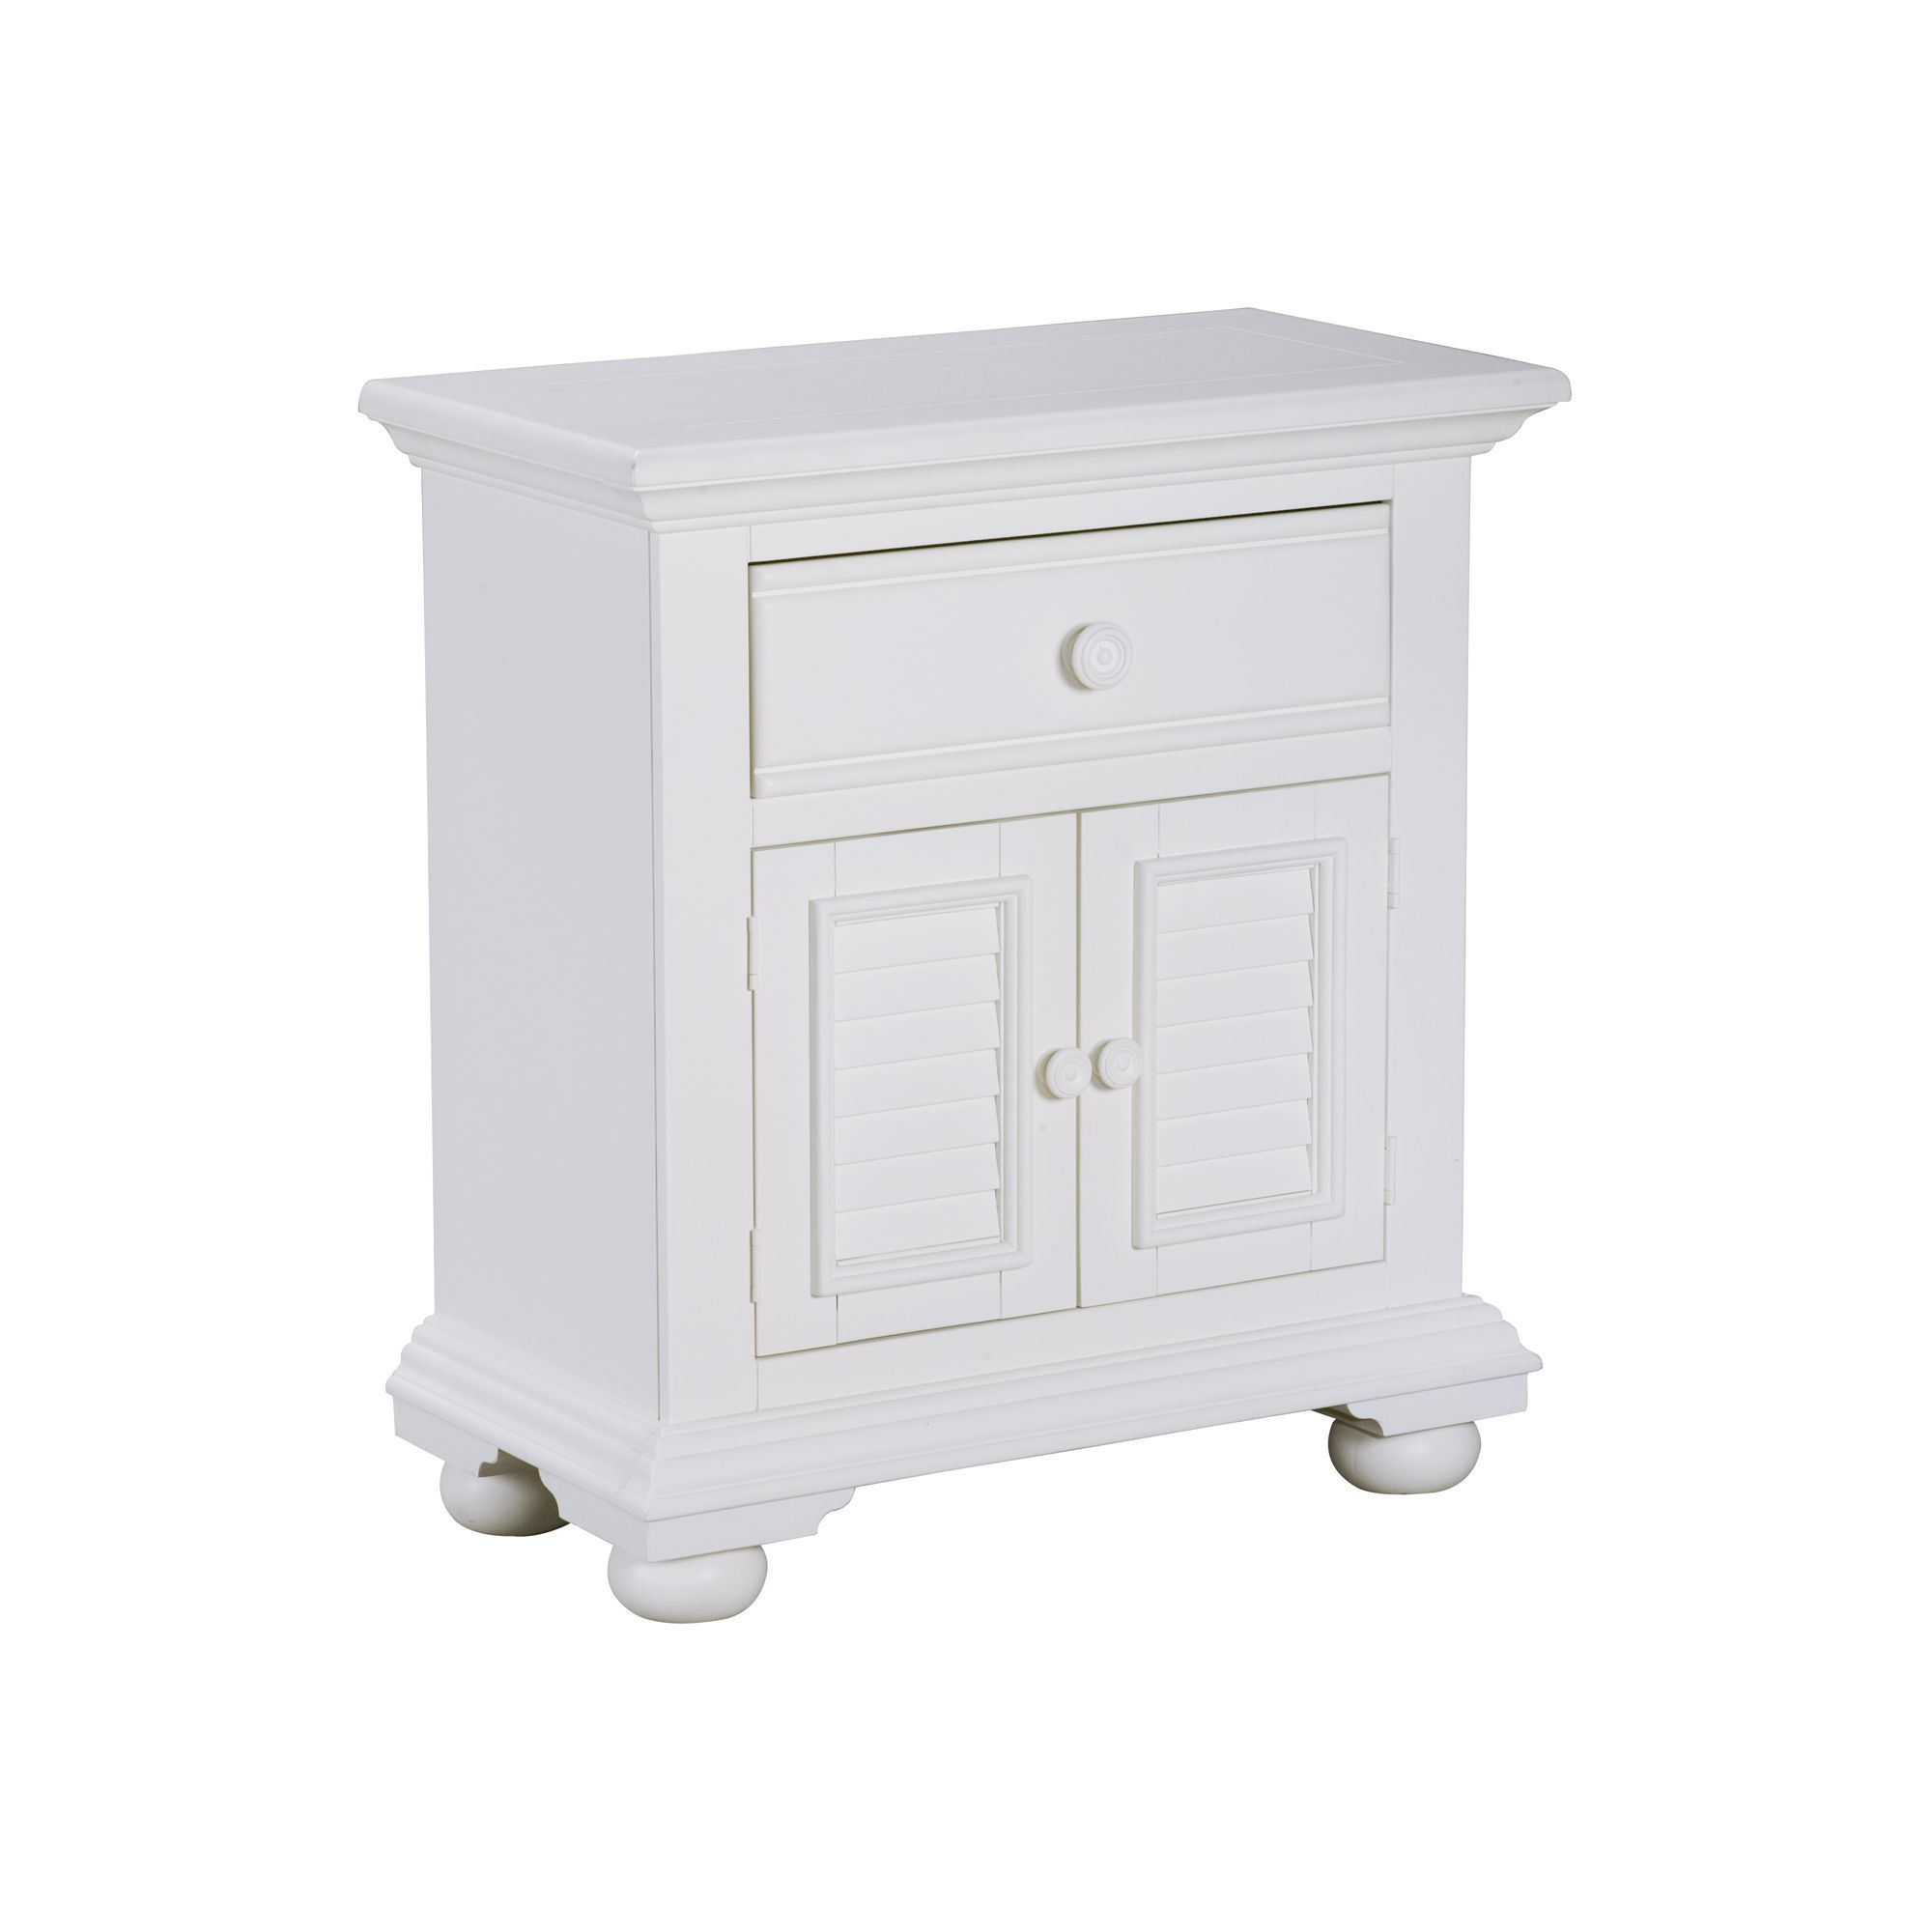 1 4502 8530 2 000 2 000 Pixels Furniture Nightstand House Styles